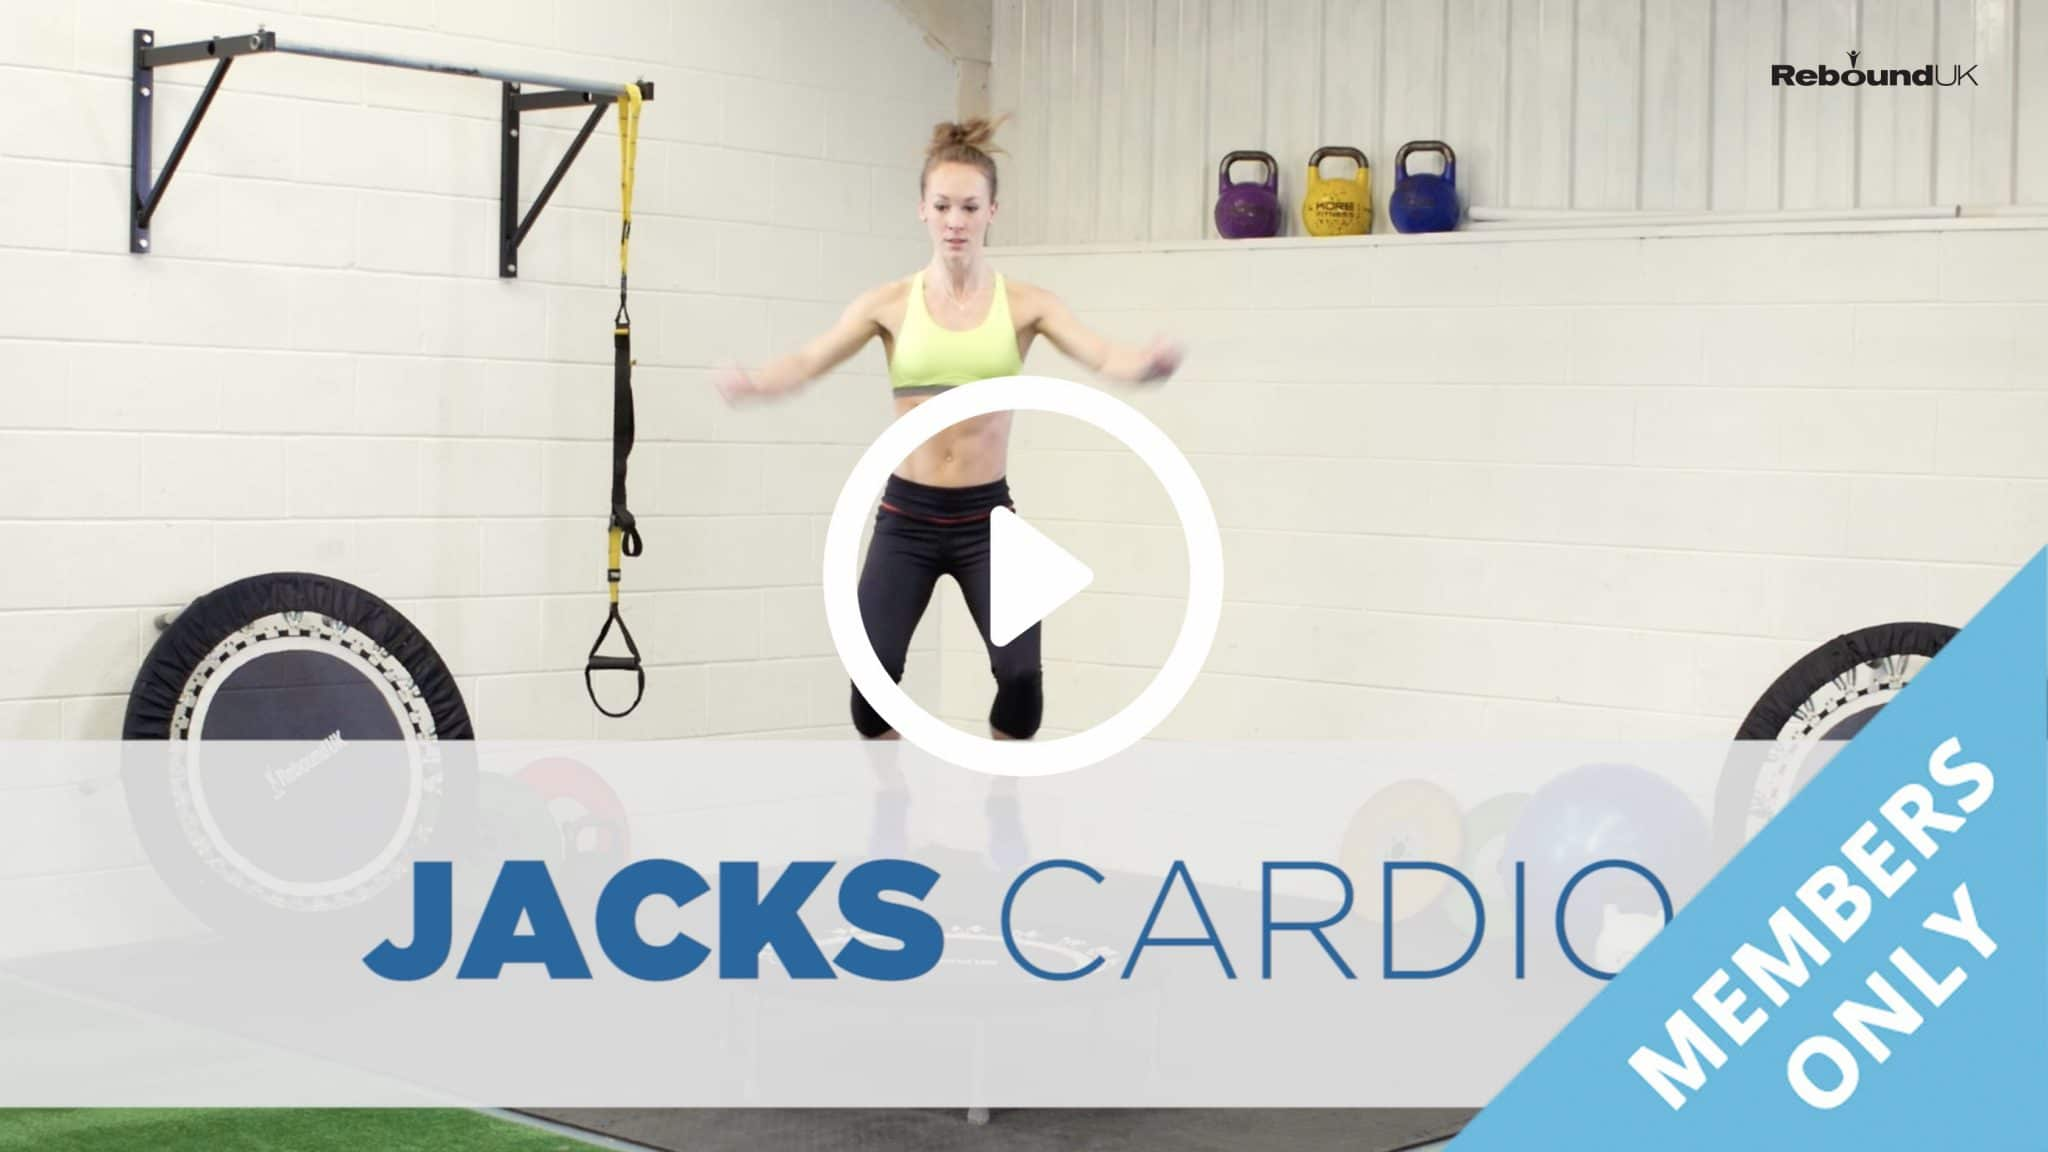 Rebound Fitness Video Library Workouts And Tagged Circuit Workout Full Body Jumping Jacks Raise Your Heart Rate With This High Energy Cardio Exercise